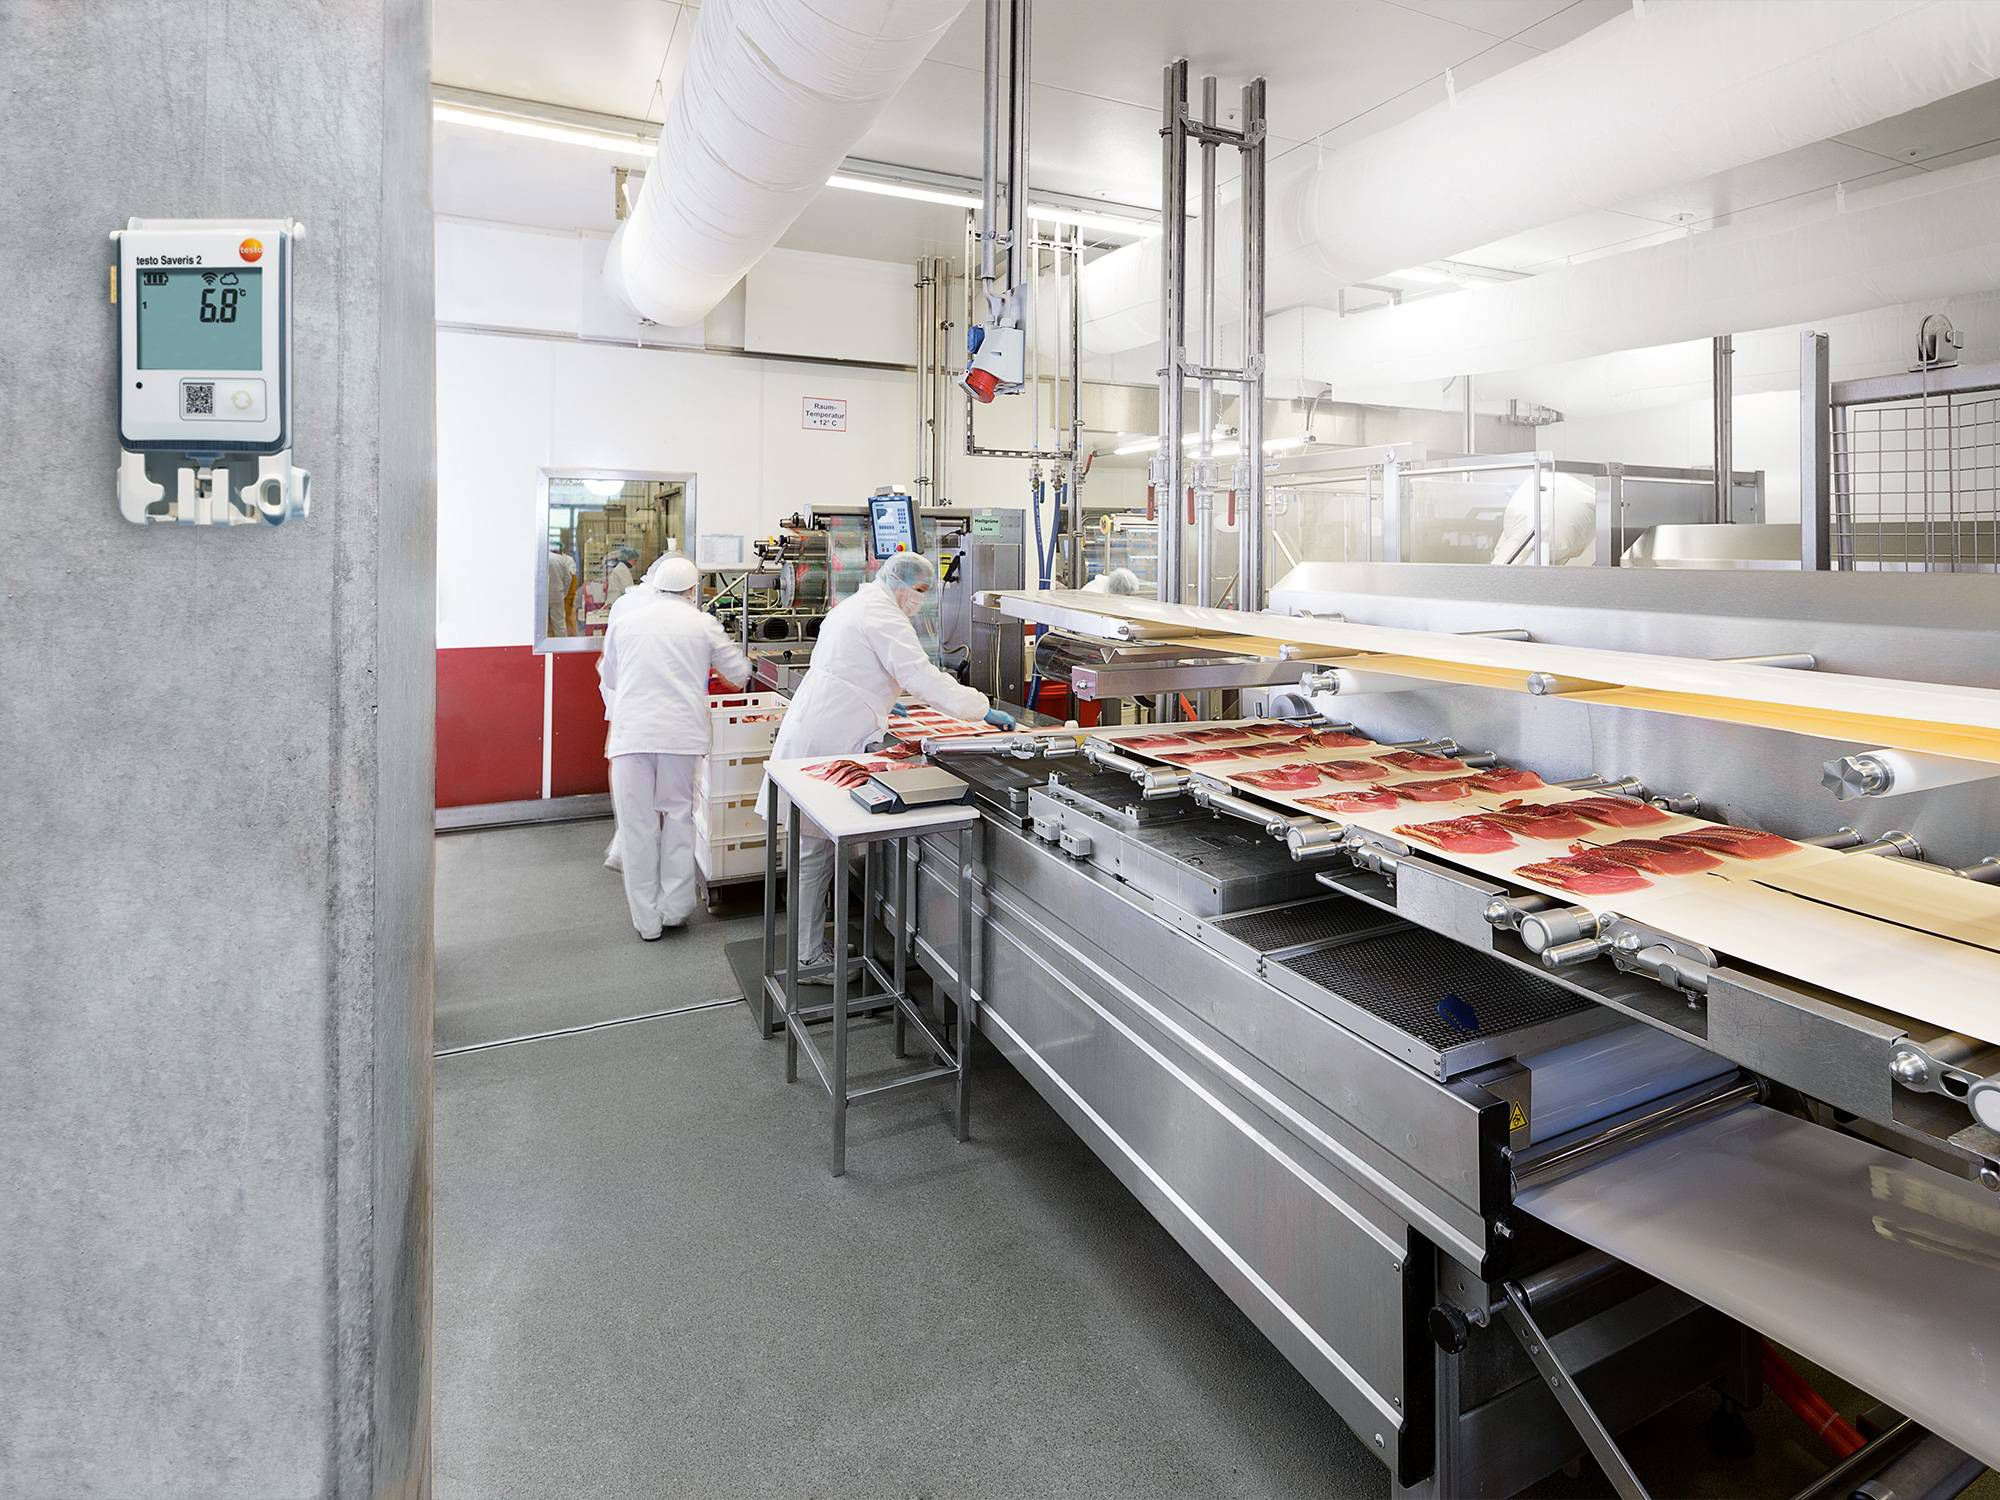 Temperature monitoring in food industry